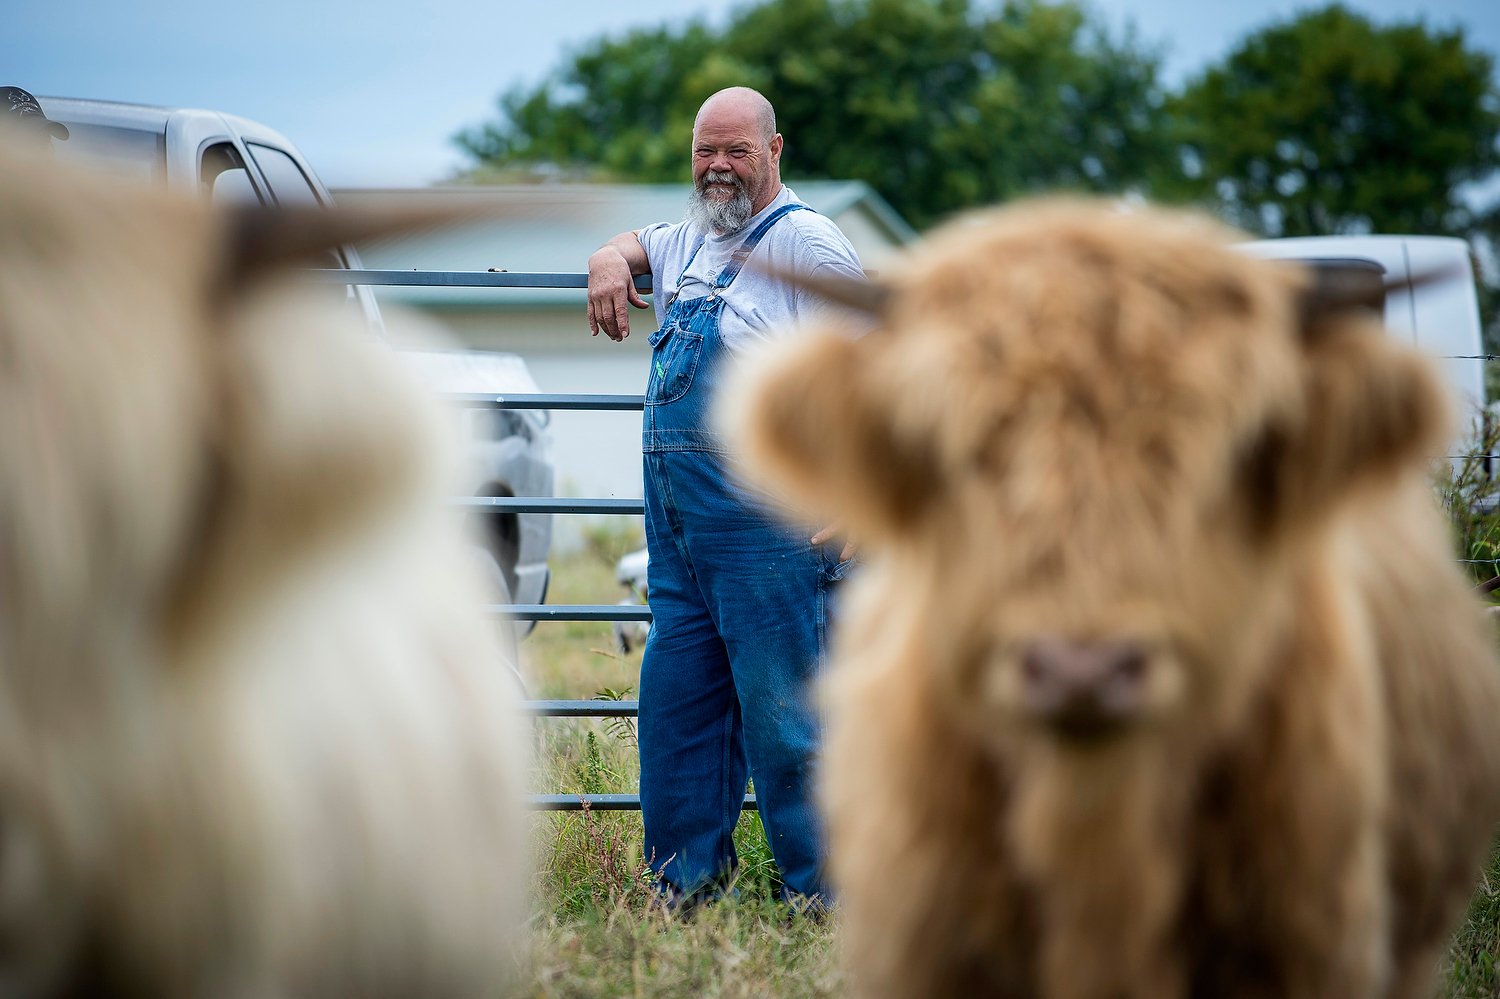 Phil Scritchfield, 65, looks over the Scottish Highland cattle that he and his wife raise just outside Eldon, MO. When they first started, six years ago, they had only three animals. They have forty now.